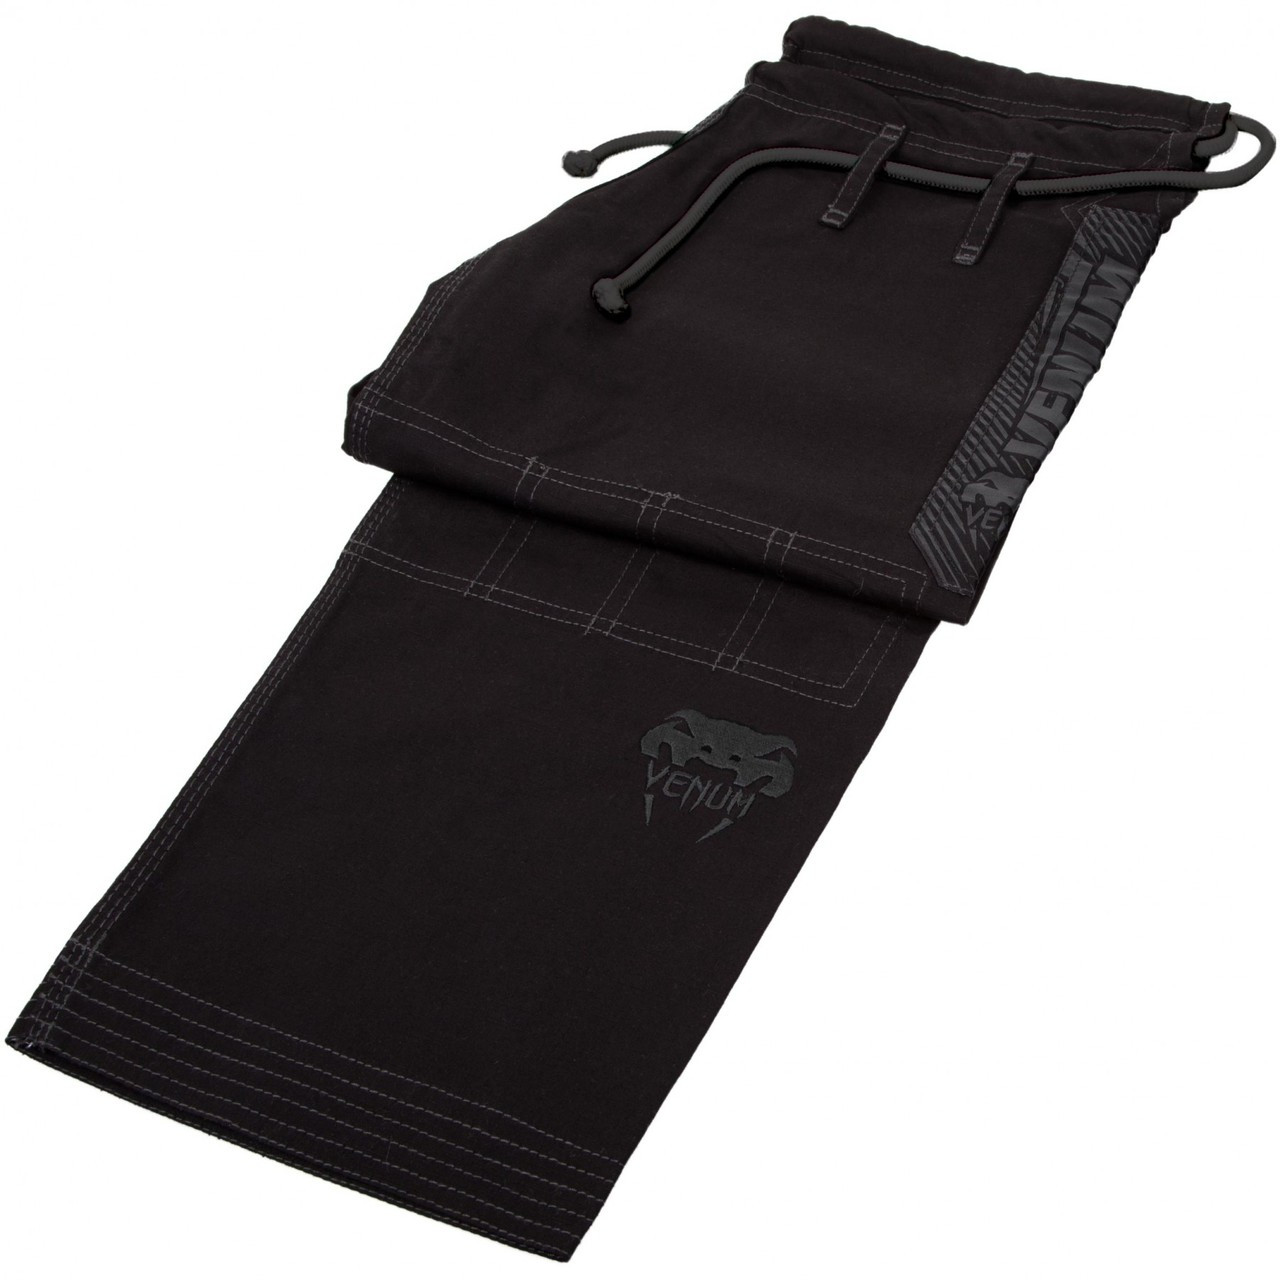 PAnts of the Venum Elite BJJ GI in Black on black  is now available at www.thejiujitsushop.com  Enjoy Free Shipping from The Jiu Jitsu Shop today!